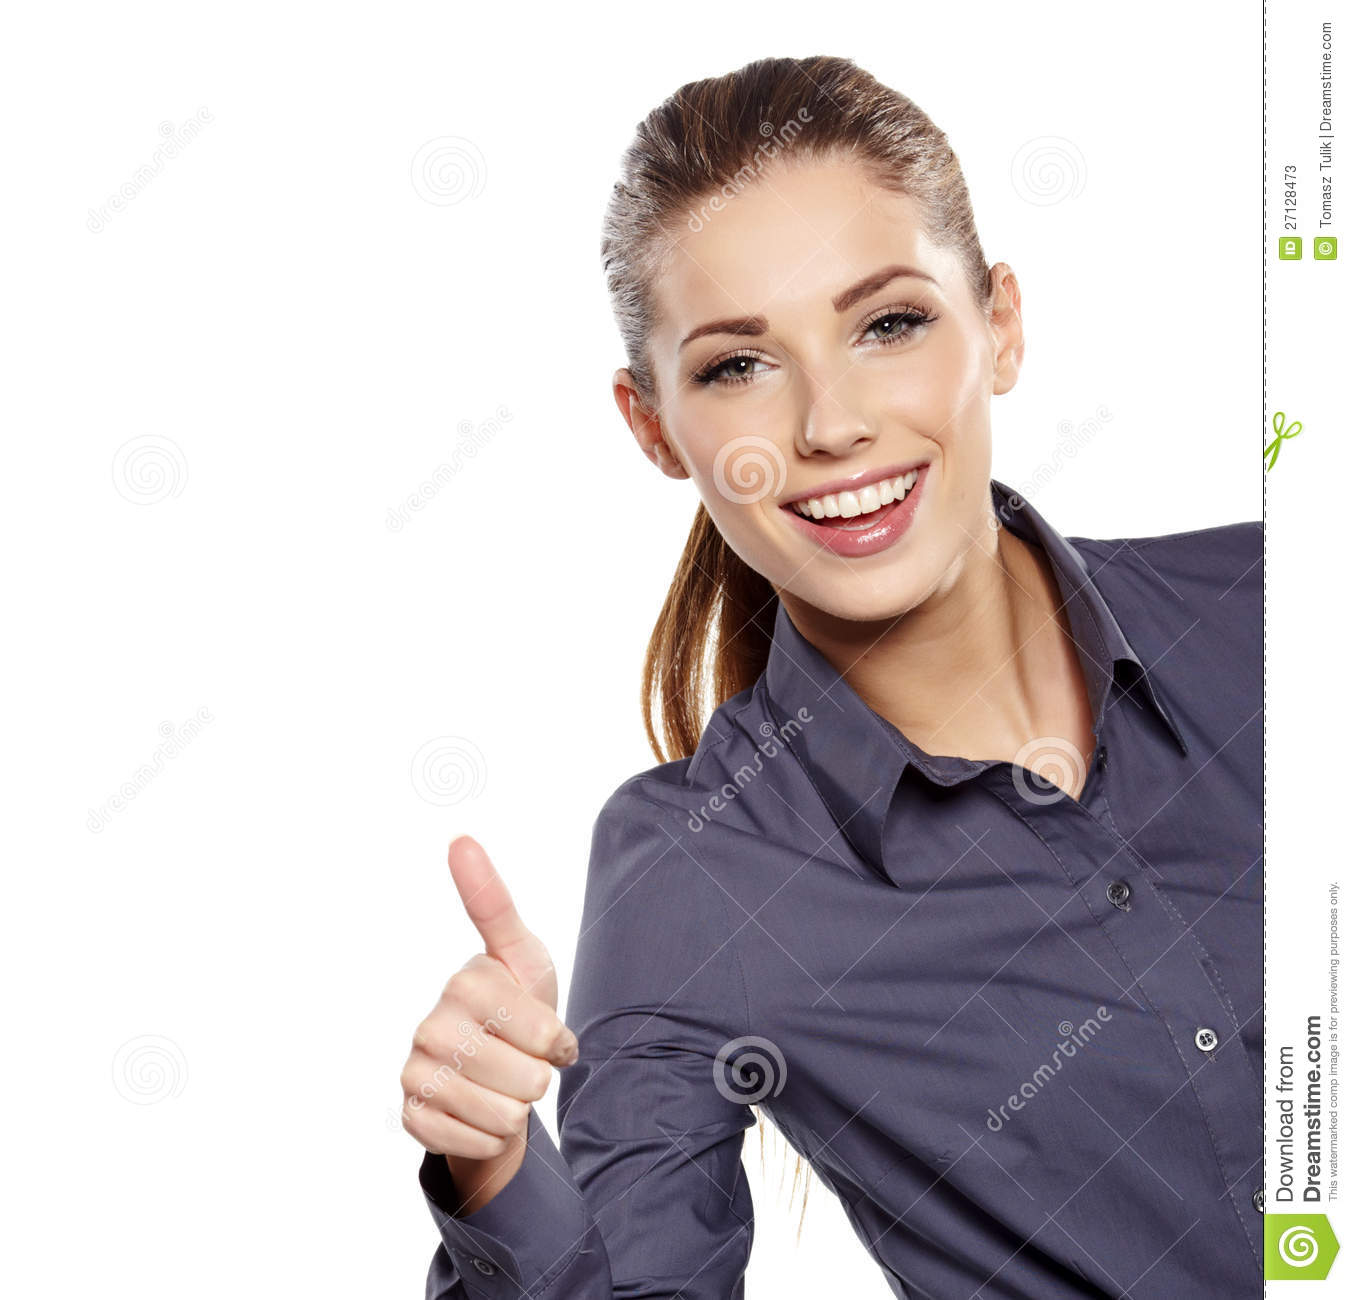 business-woman-ok-hand-sign-27128473.jpg